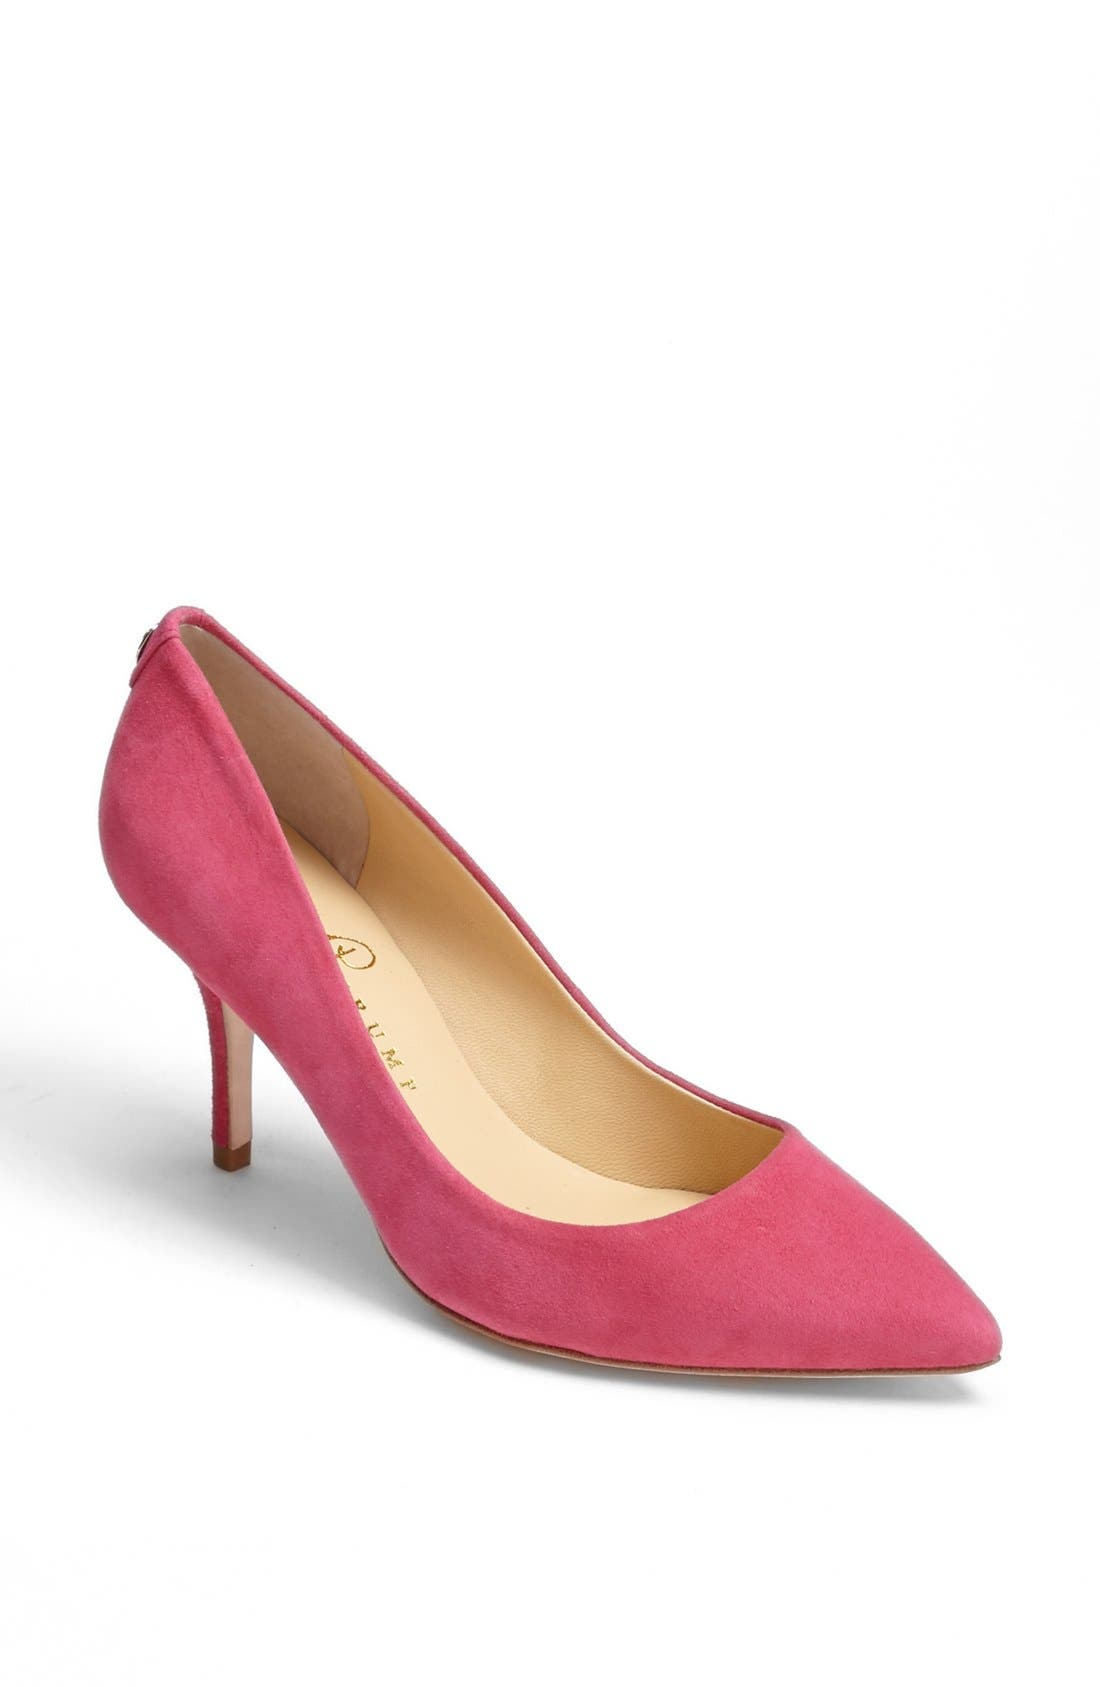 Main Image - Ivanka Trump 'Natalie' Pointed Toe Pump